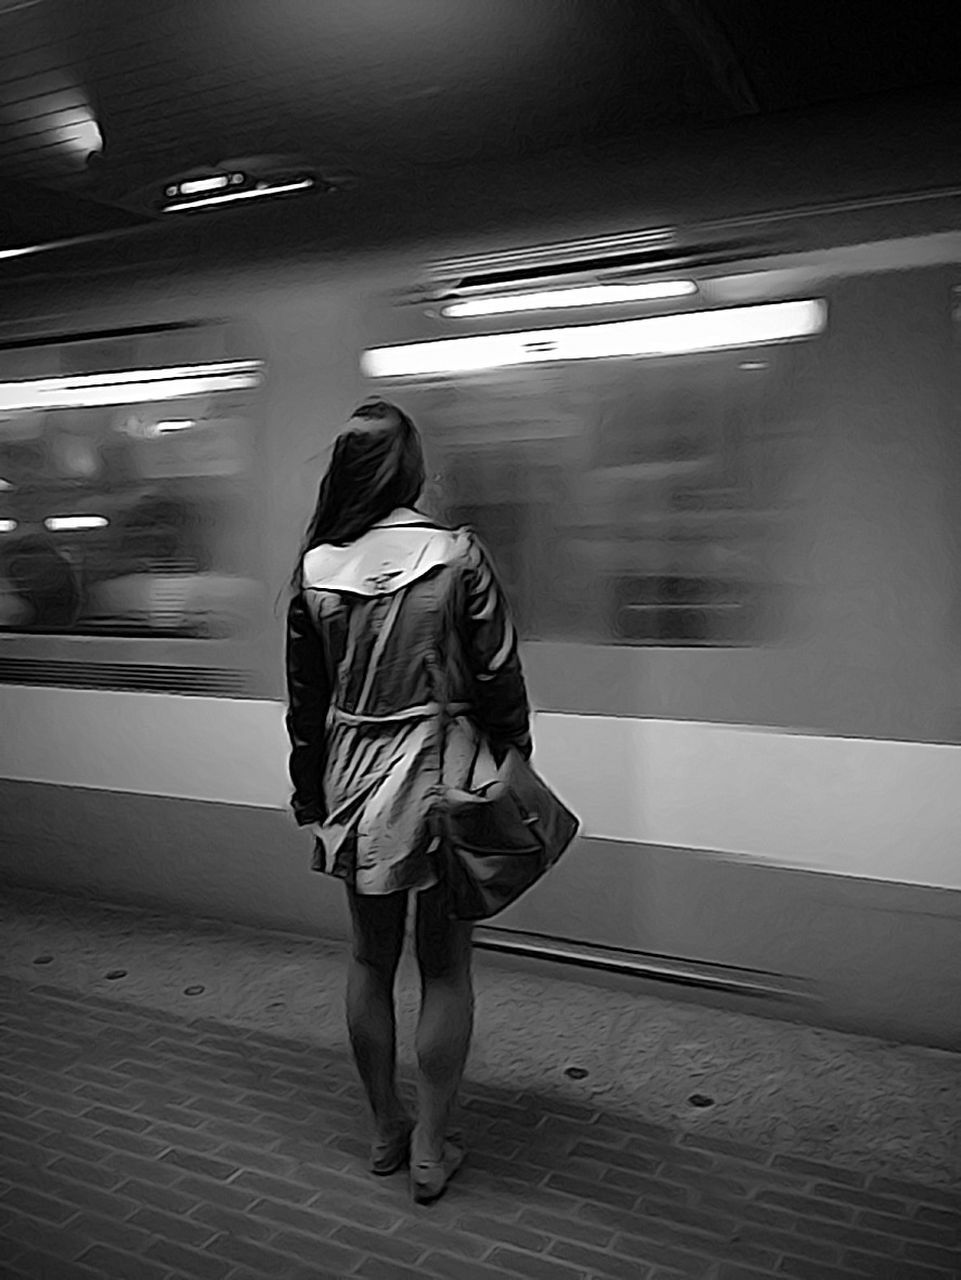 real people, rear view, blurred motion, transportation, full length, one person, public transportation, mode of transport, train - vehicle, motion, lifestyles, indoors, illuminated, standing, women, men, night, people